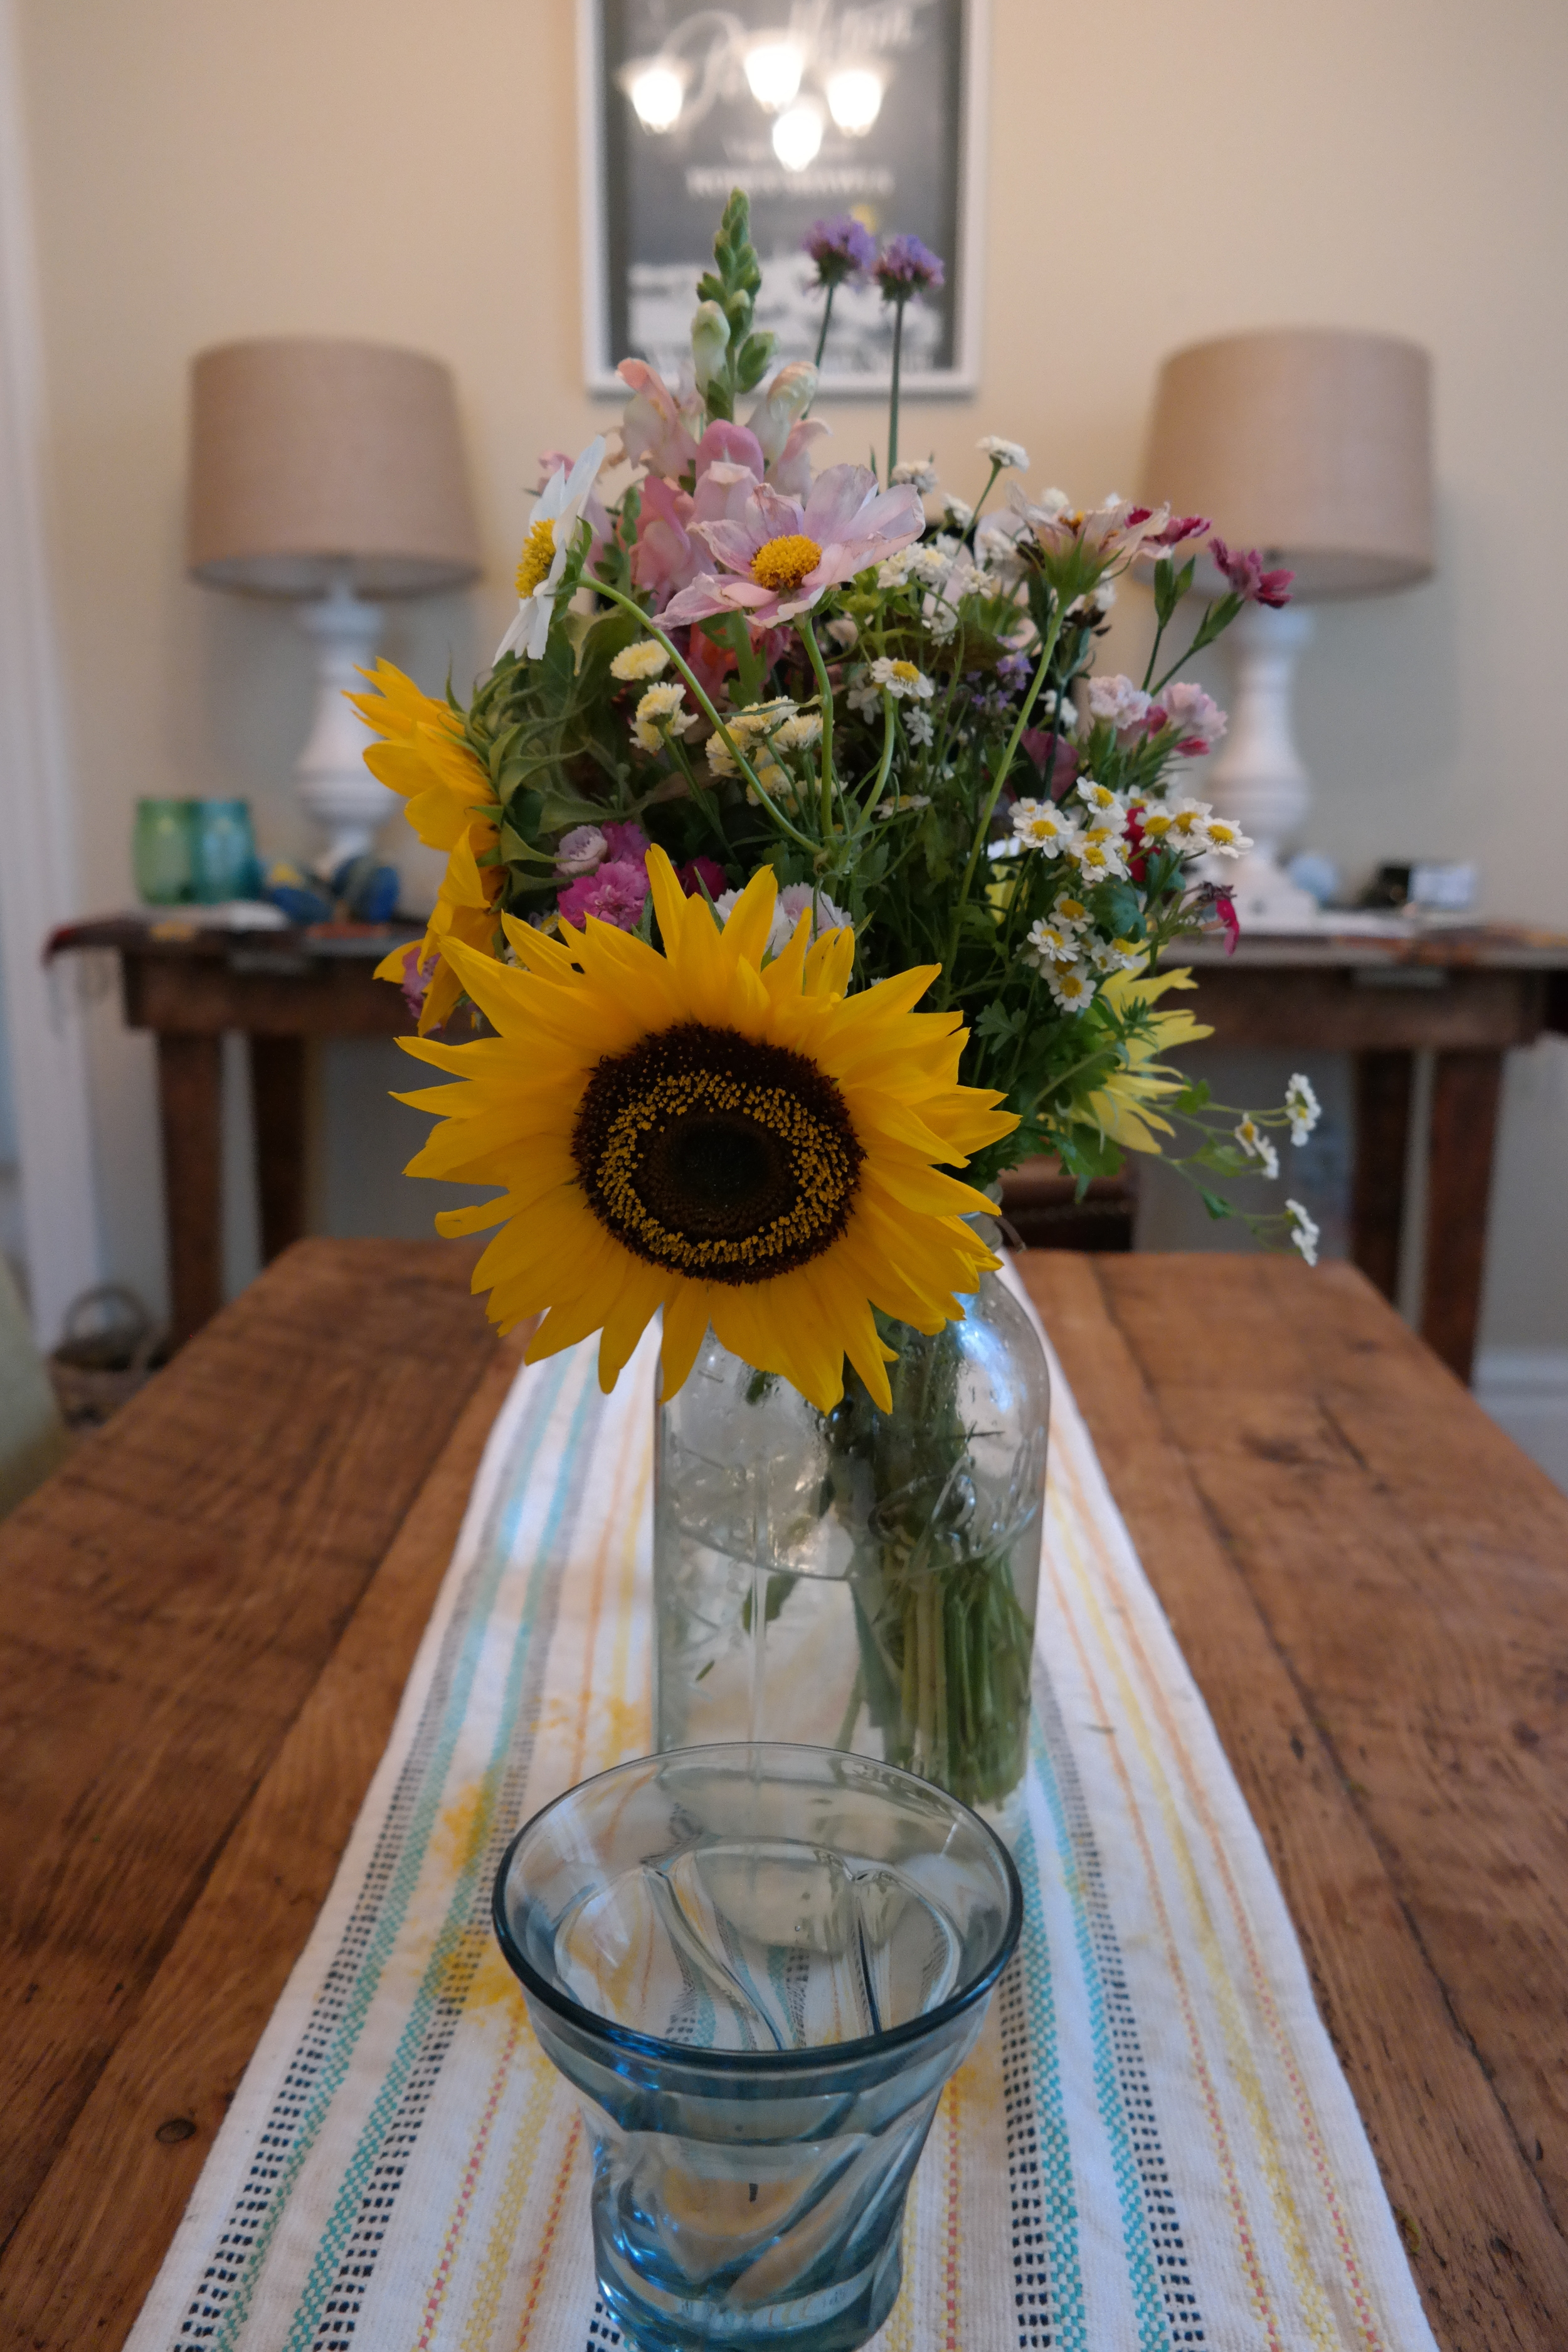 I like to mix it up with fresh, local flowers from the farmer's market, but I do prefer living plants